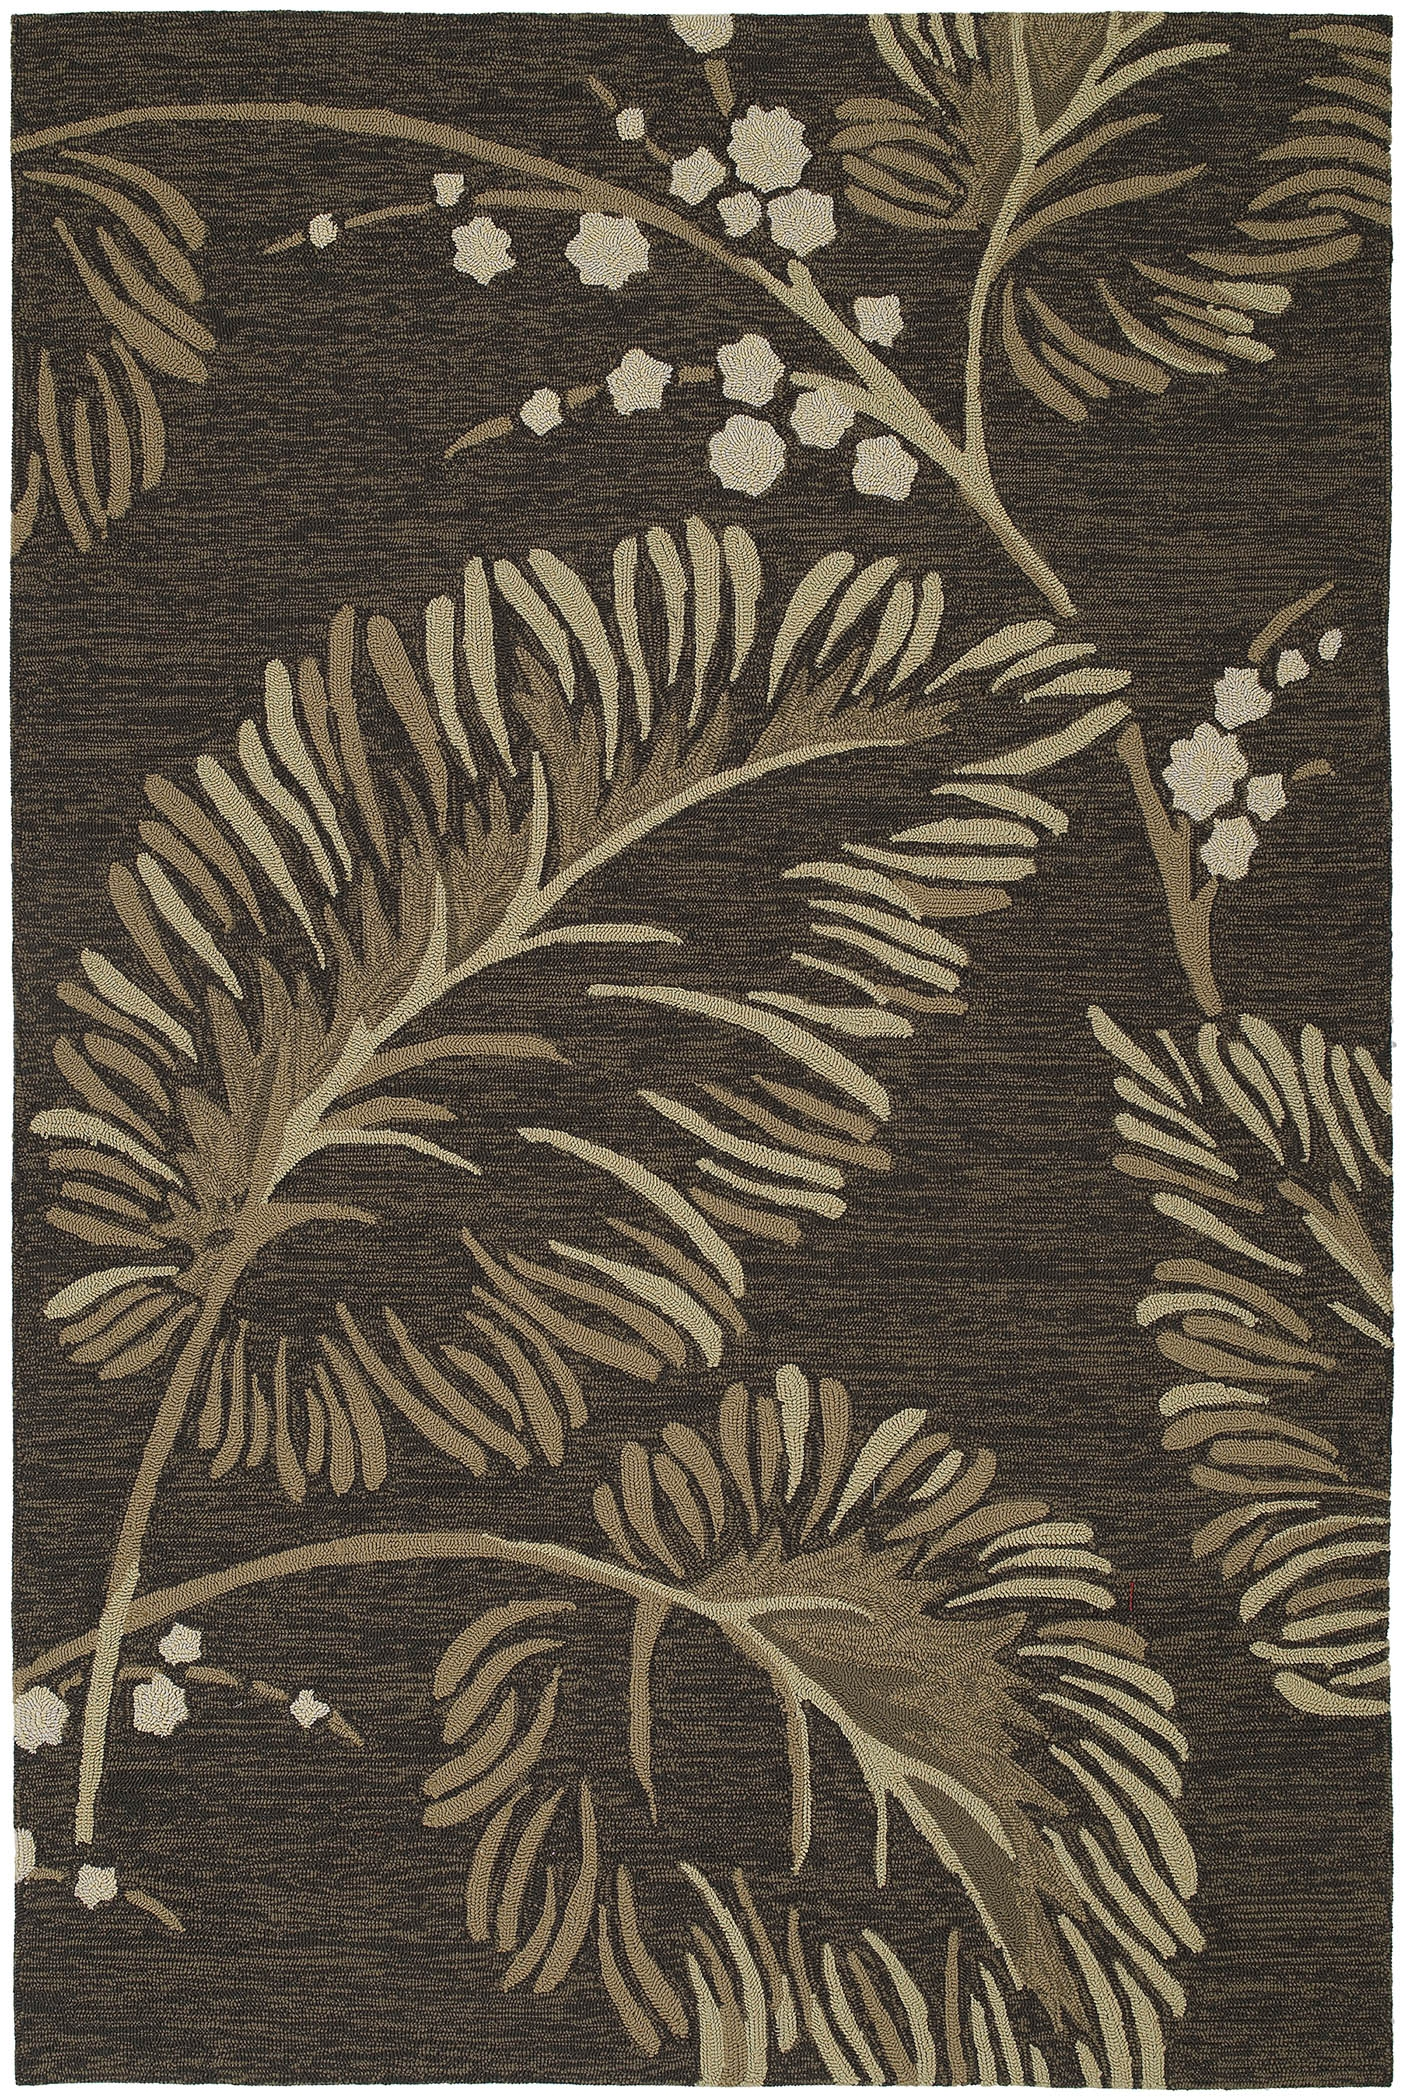 Home & Porch Palmyra 2025 40 Chocolate Outdoor Rug by Kaleen